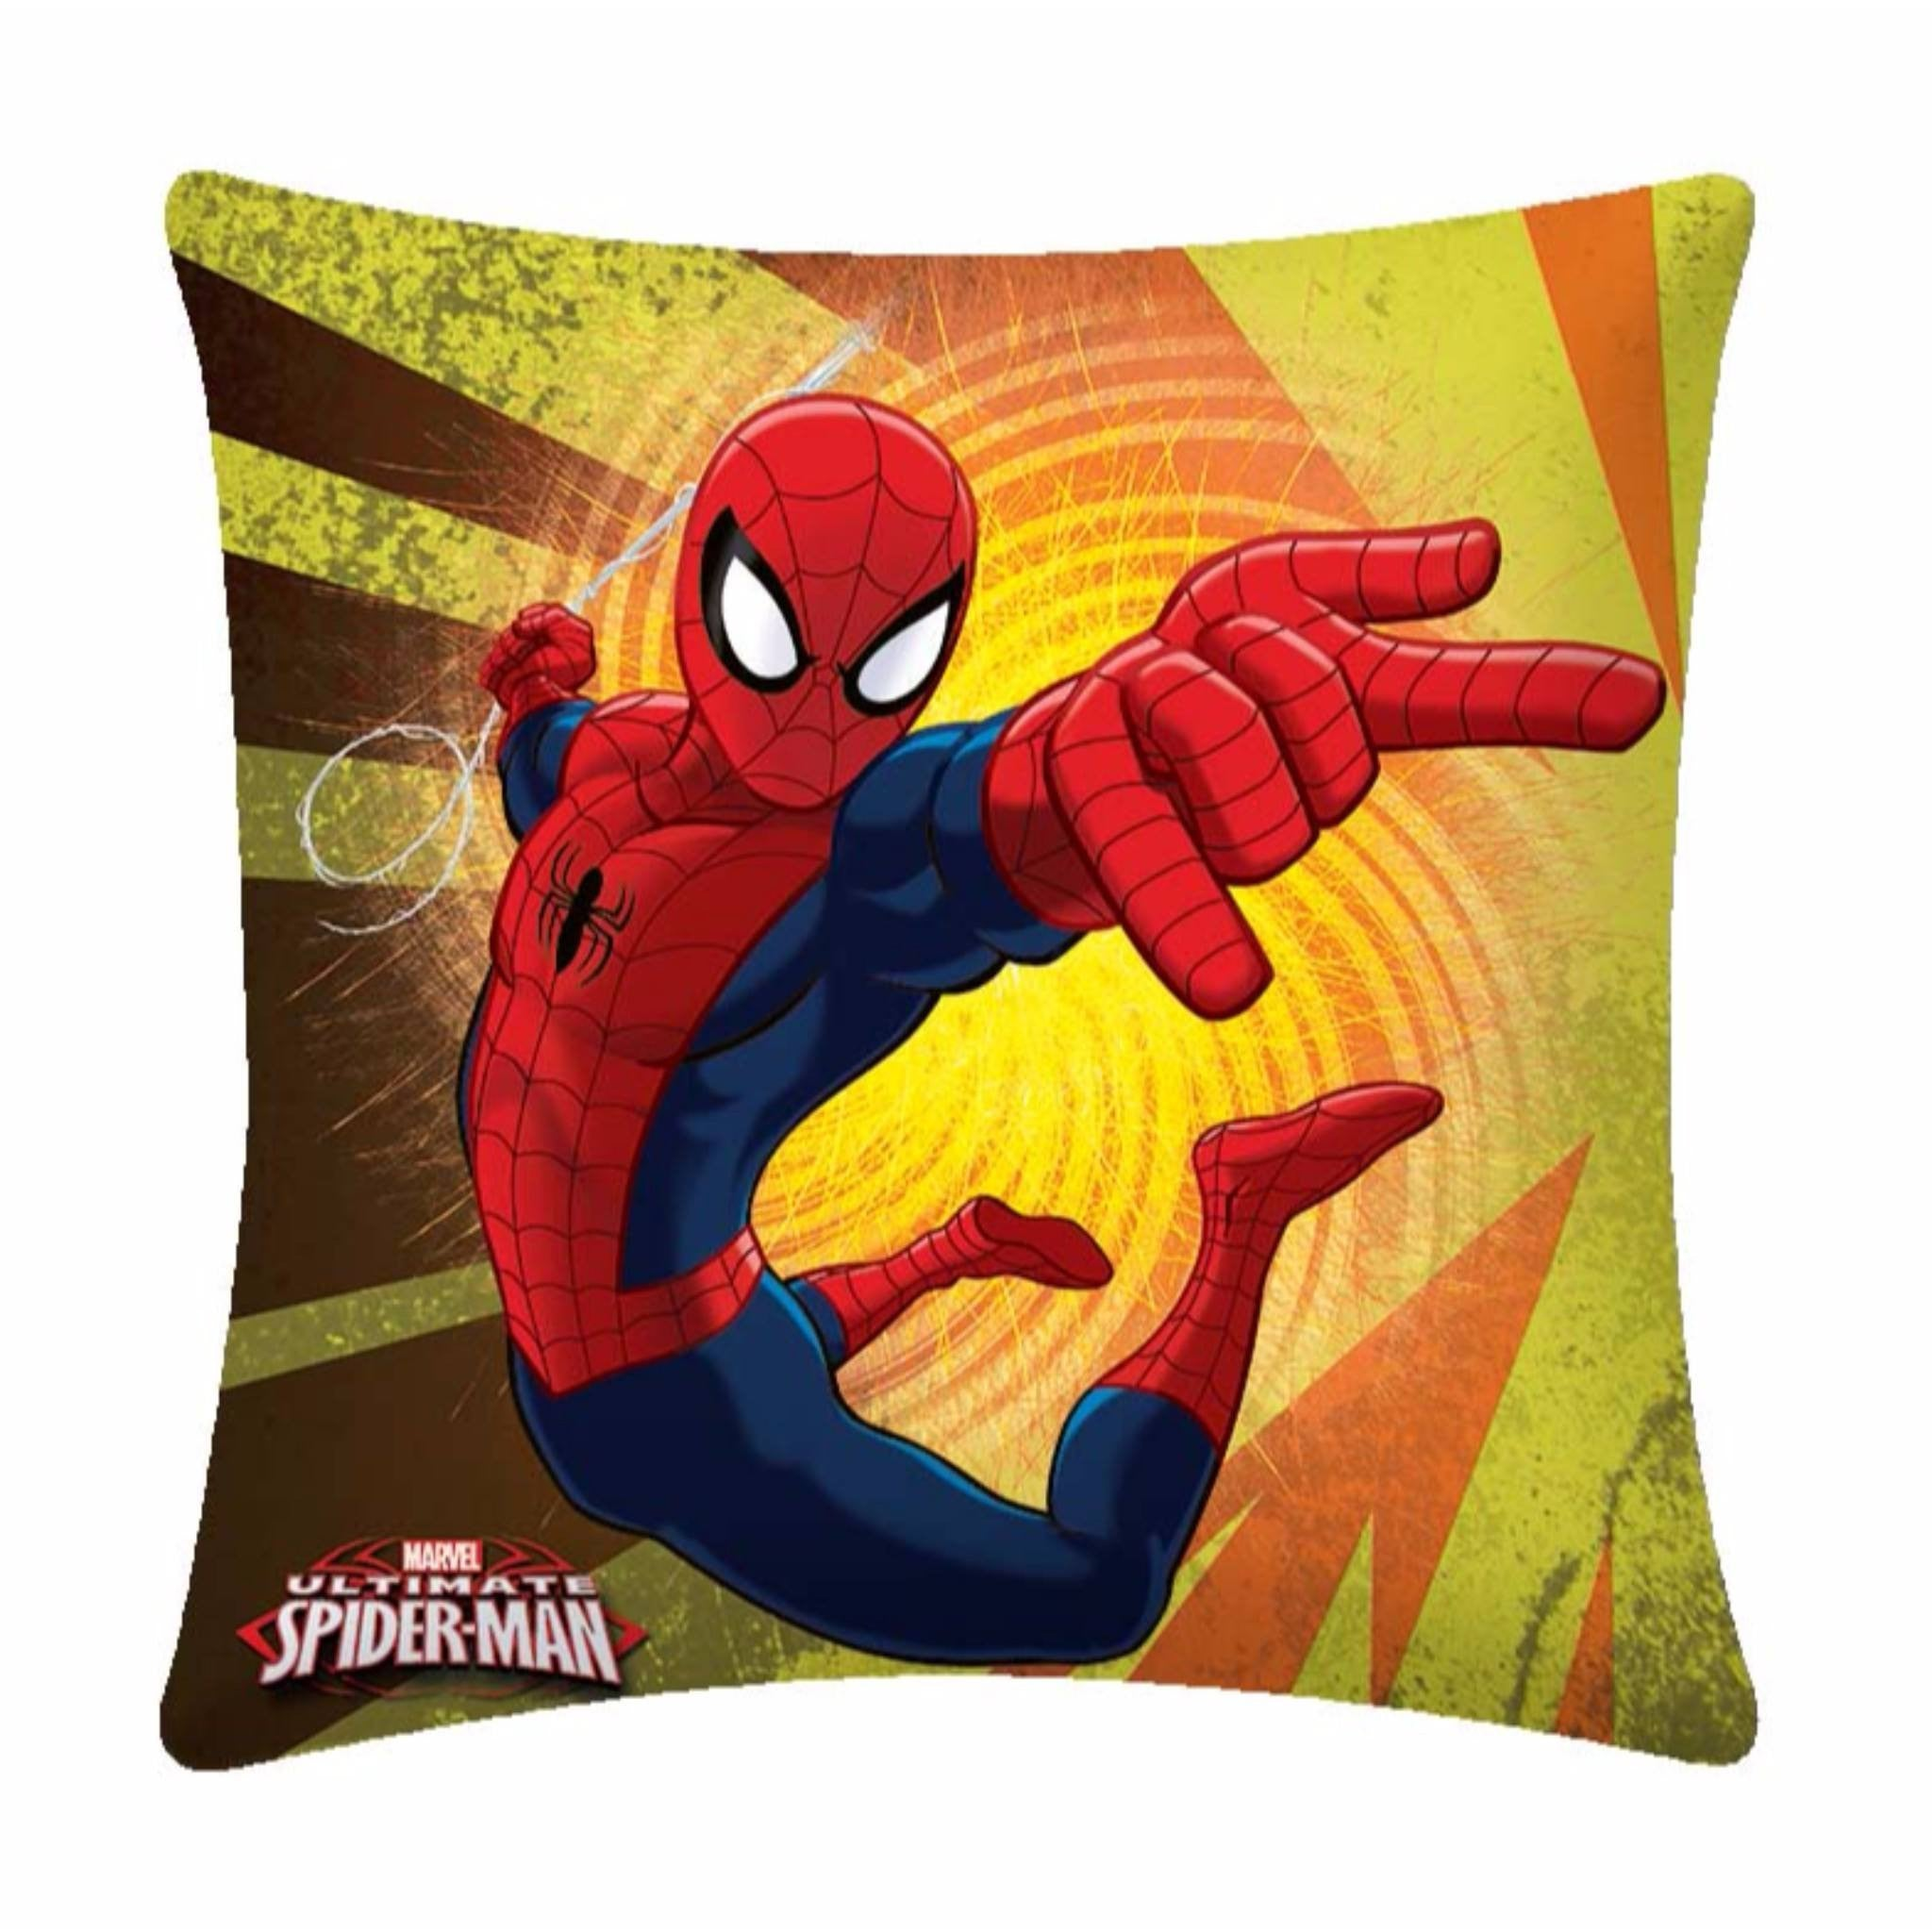 Flying Spiderman Polyester Cartoon Cushion- 1 Piece Pack - Über Urban Cushion